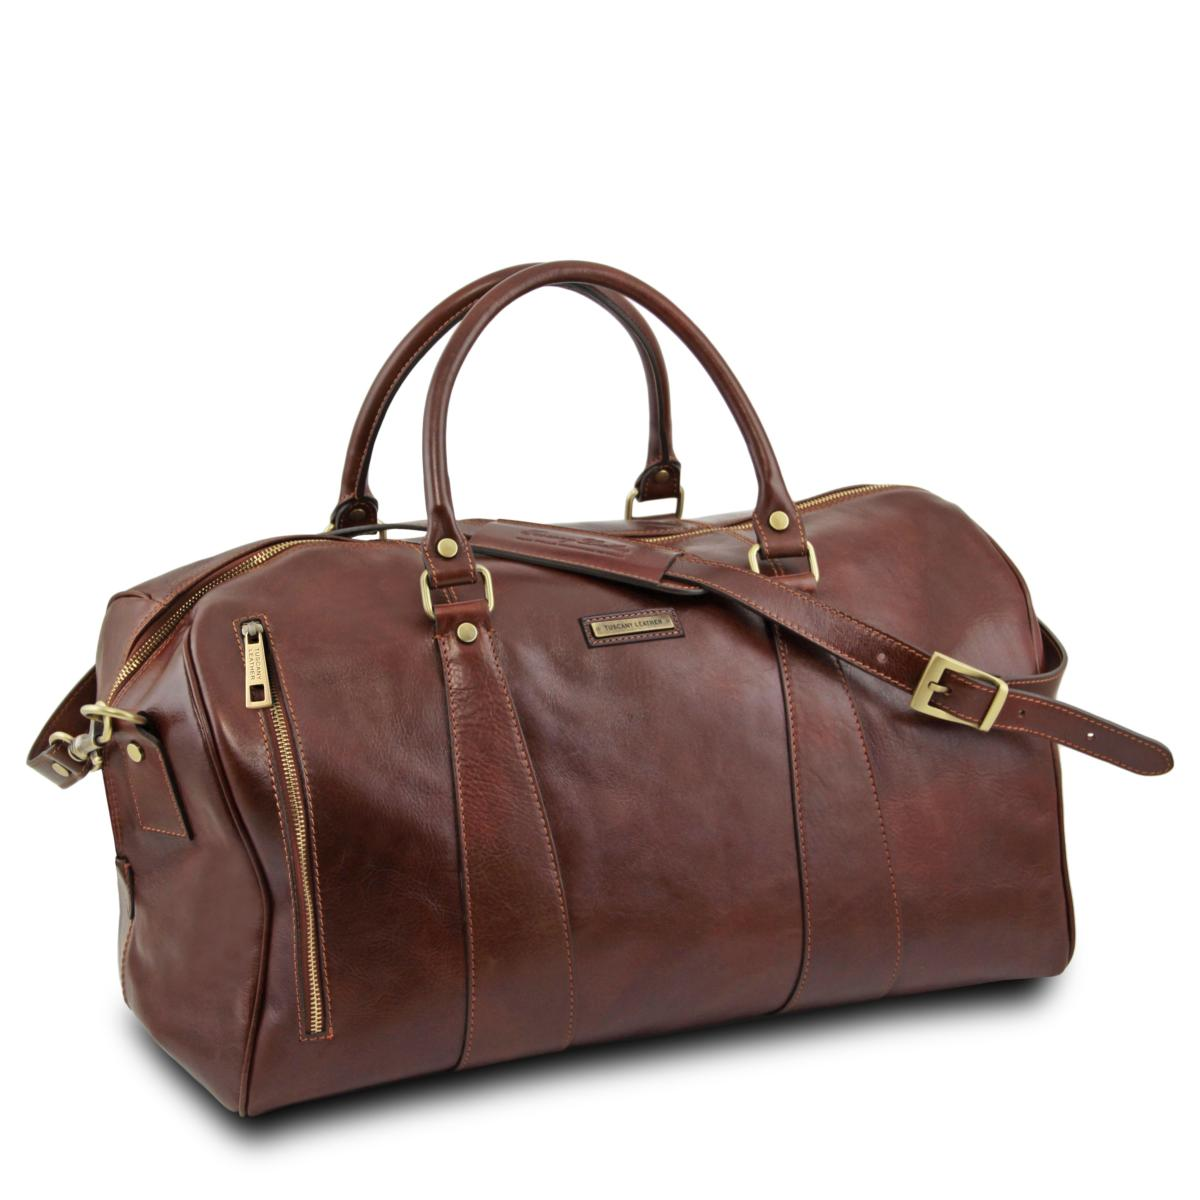 Voyage Sac Tuscany Leather Grand De Souple Cuir 6b7fvIYgy